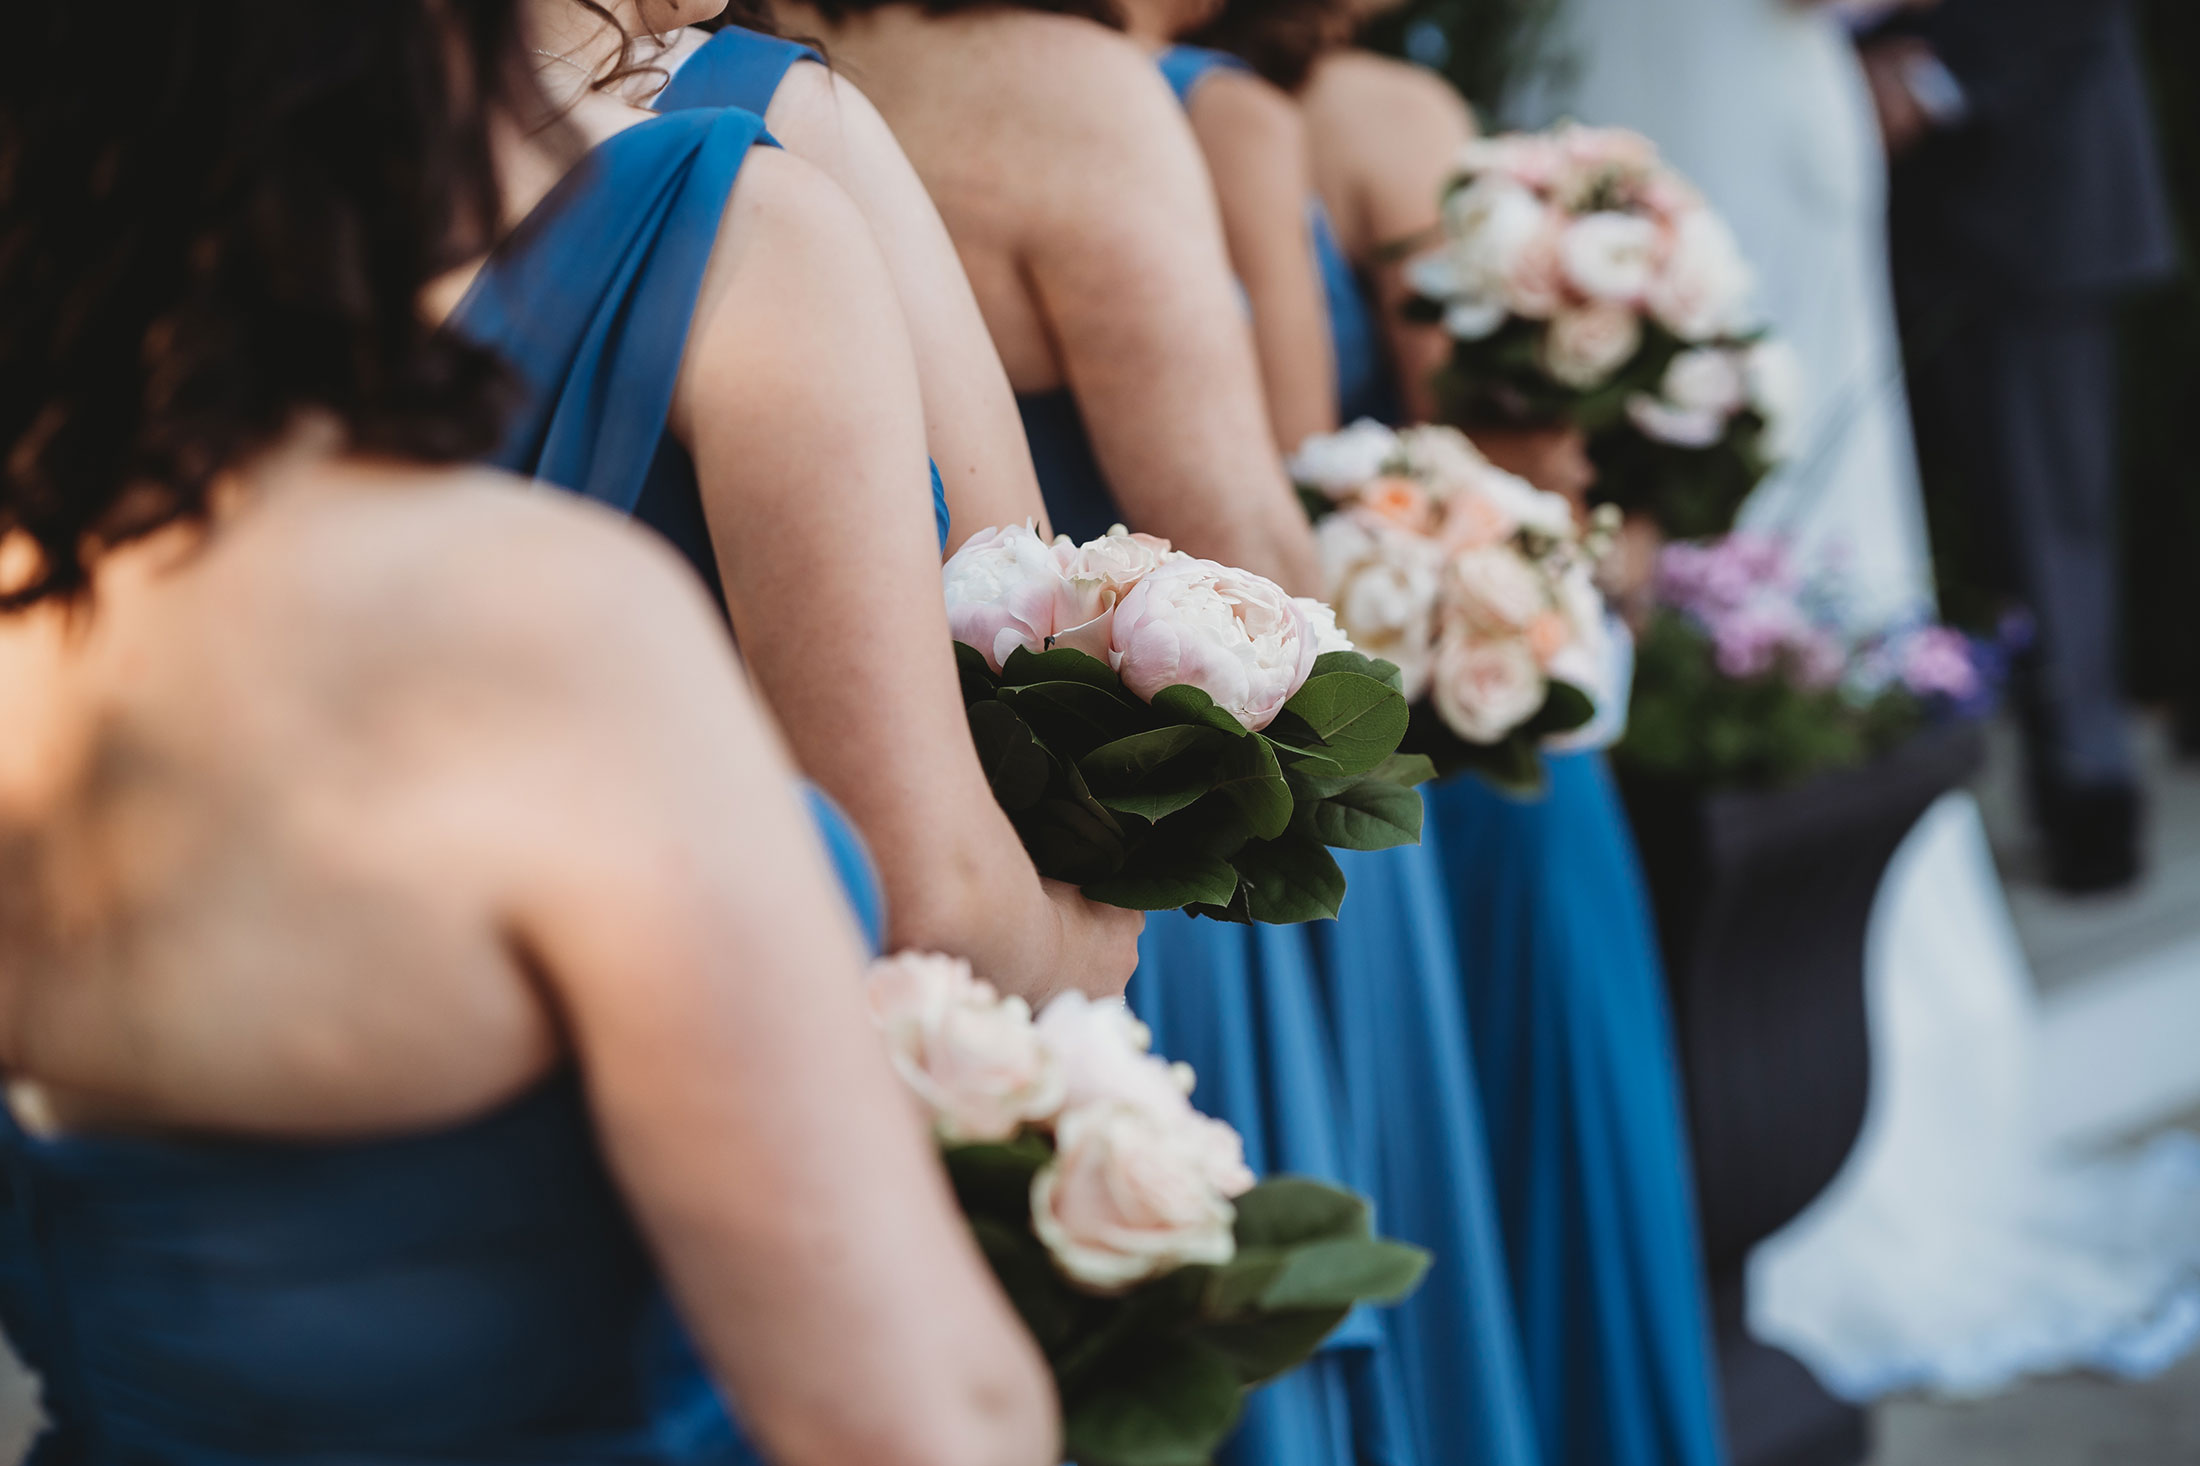 Bridesmaids dresses in Pantone classic blue